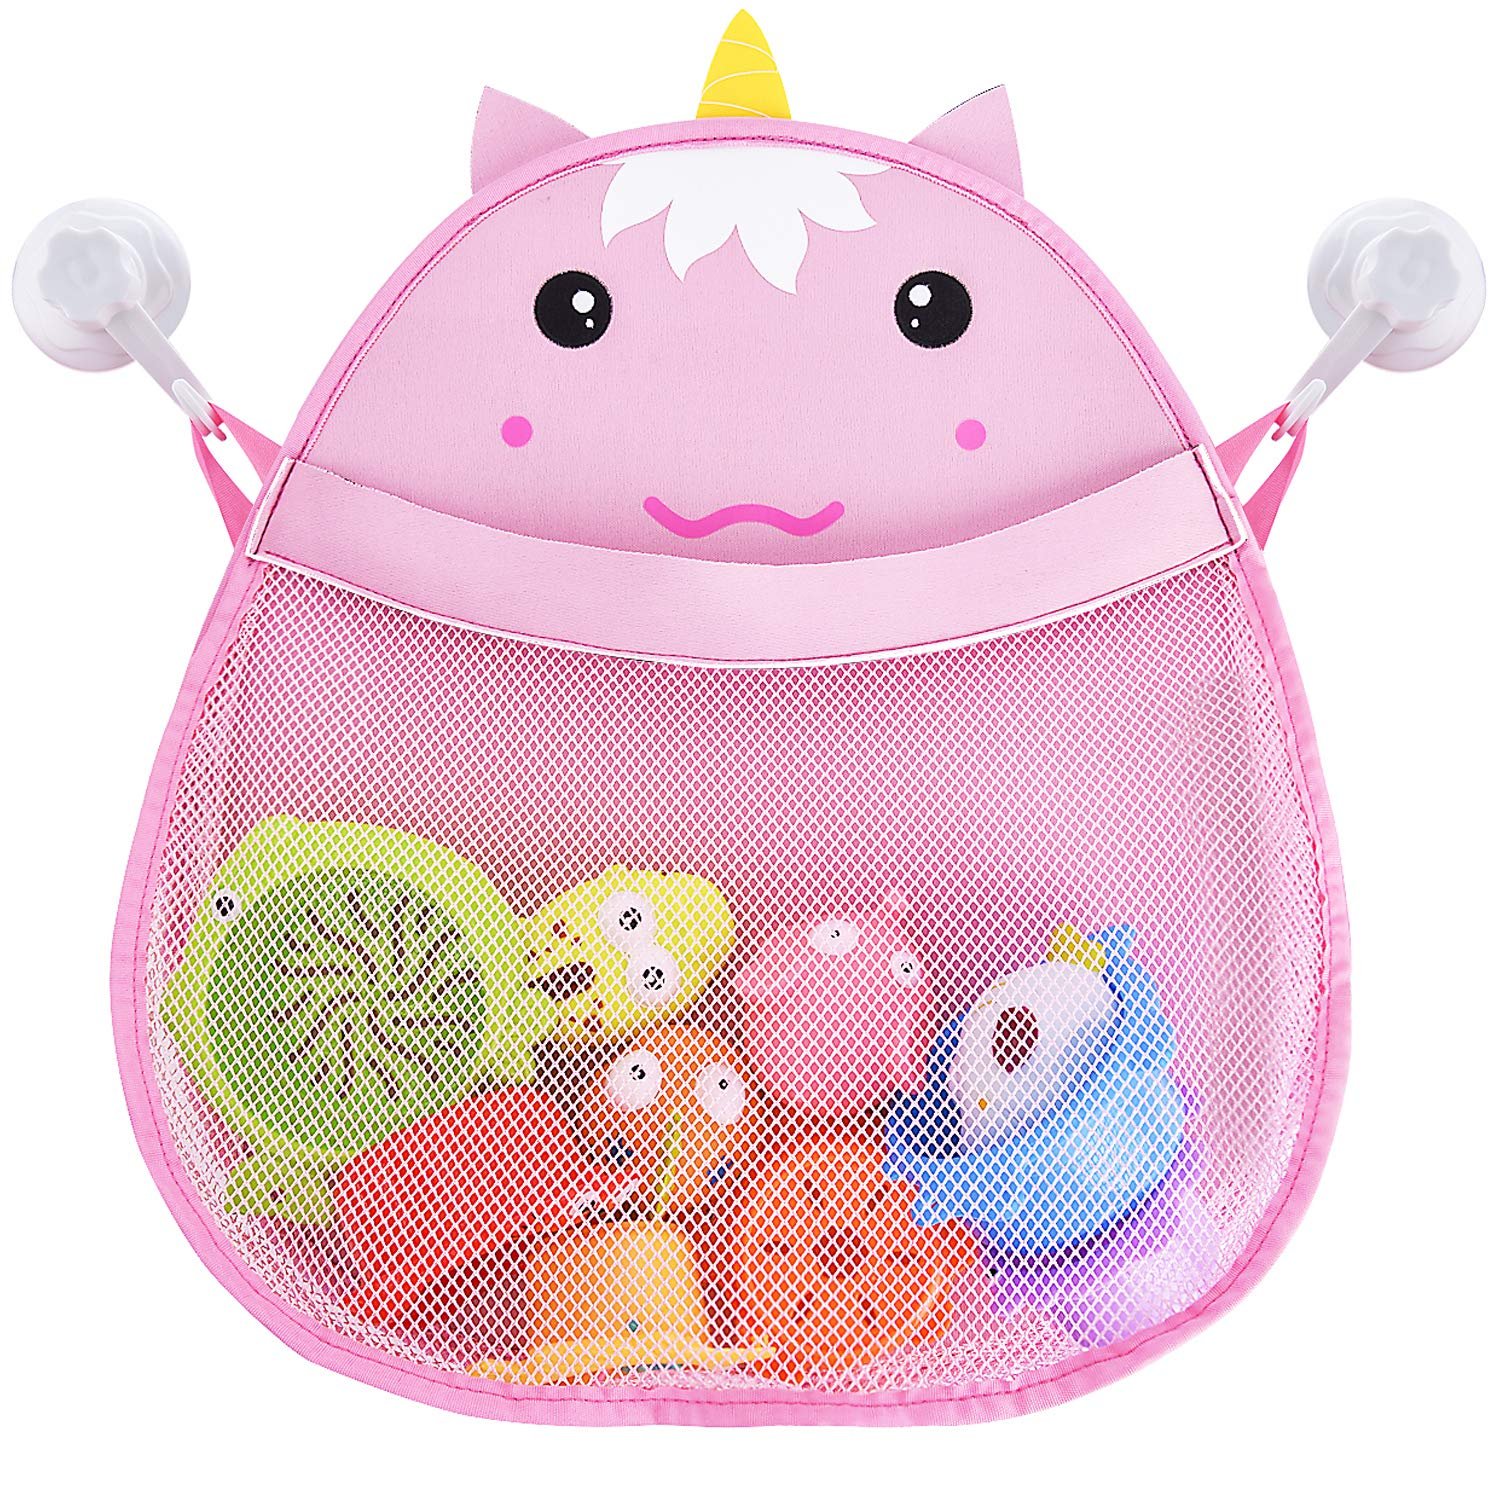 Bath Toy Organizer Baby Bath Toy Storage Mesh Net Extra Large Storage for Toddler Bath Toys Quick Dry Cute Pink Unicorn with Two Heavy Duty Suction Cups